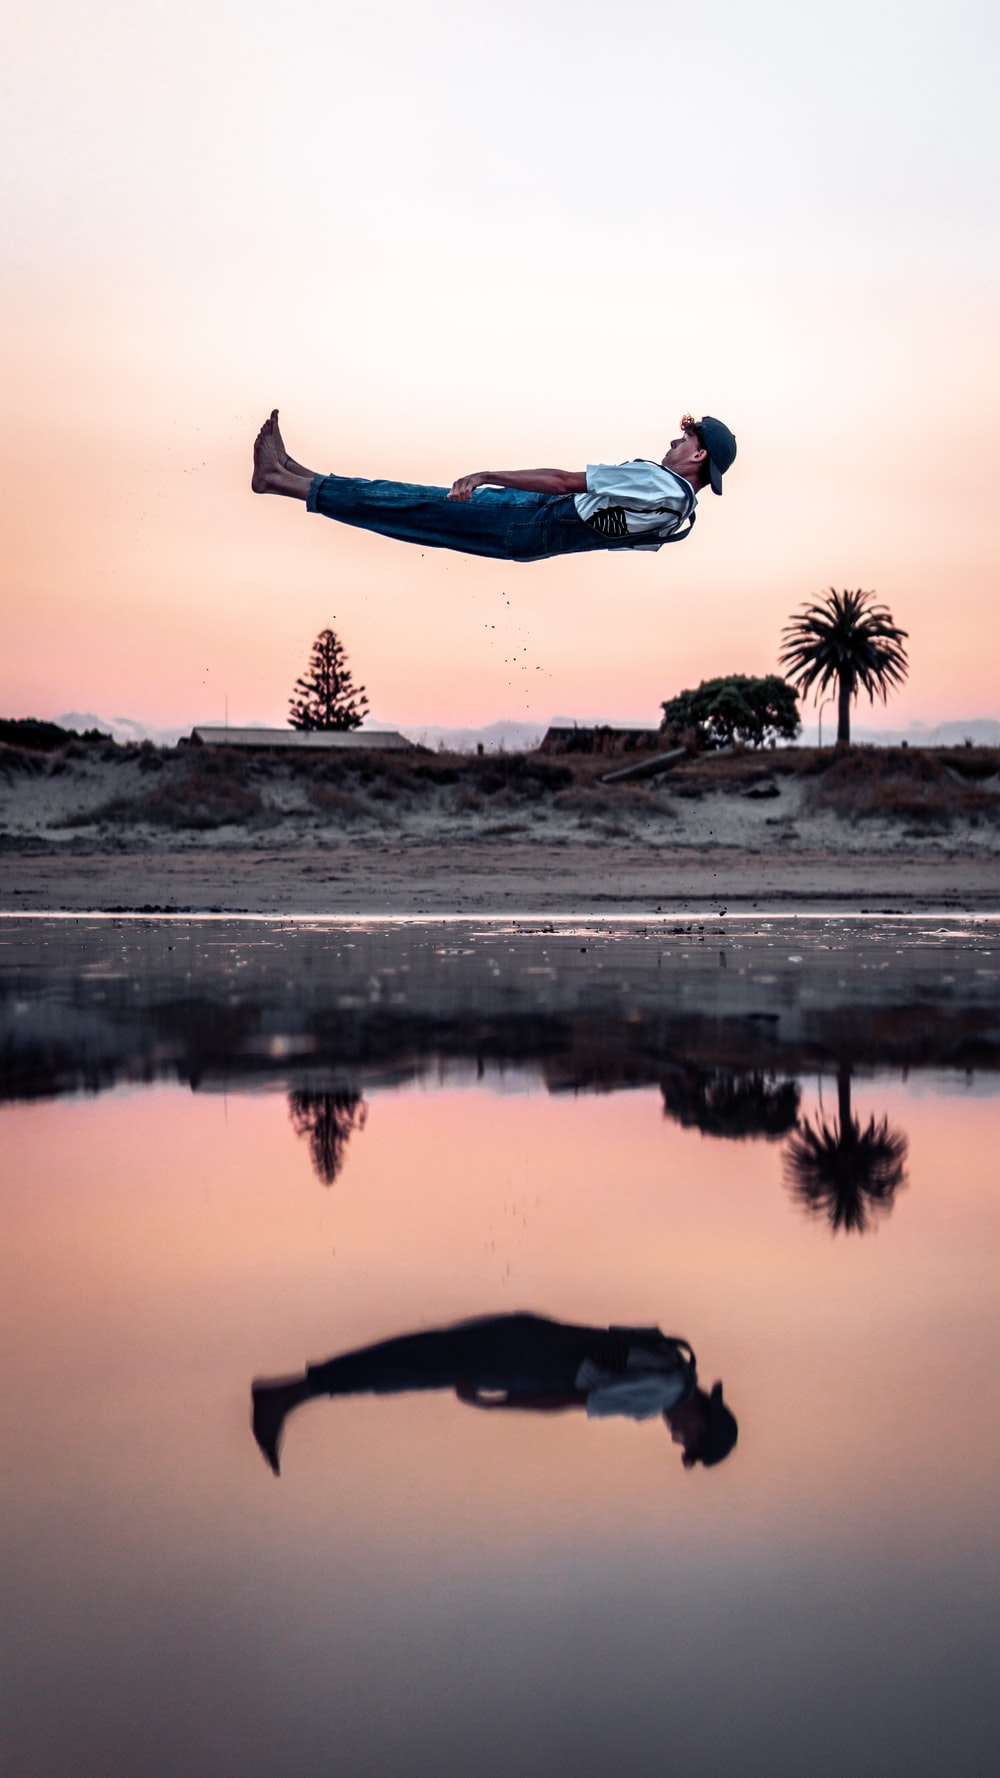 man above body of water during daytime